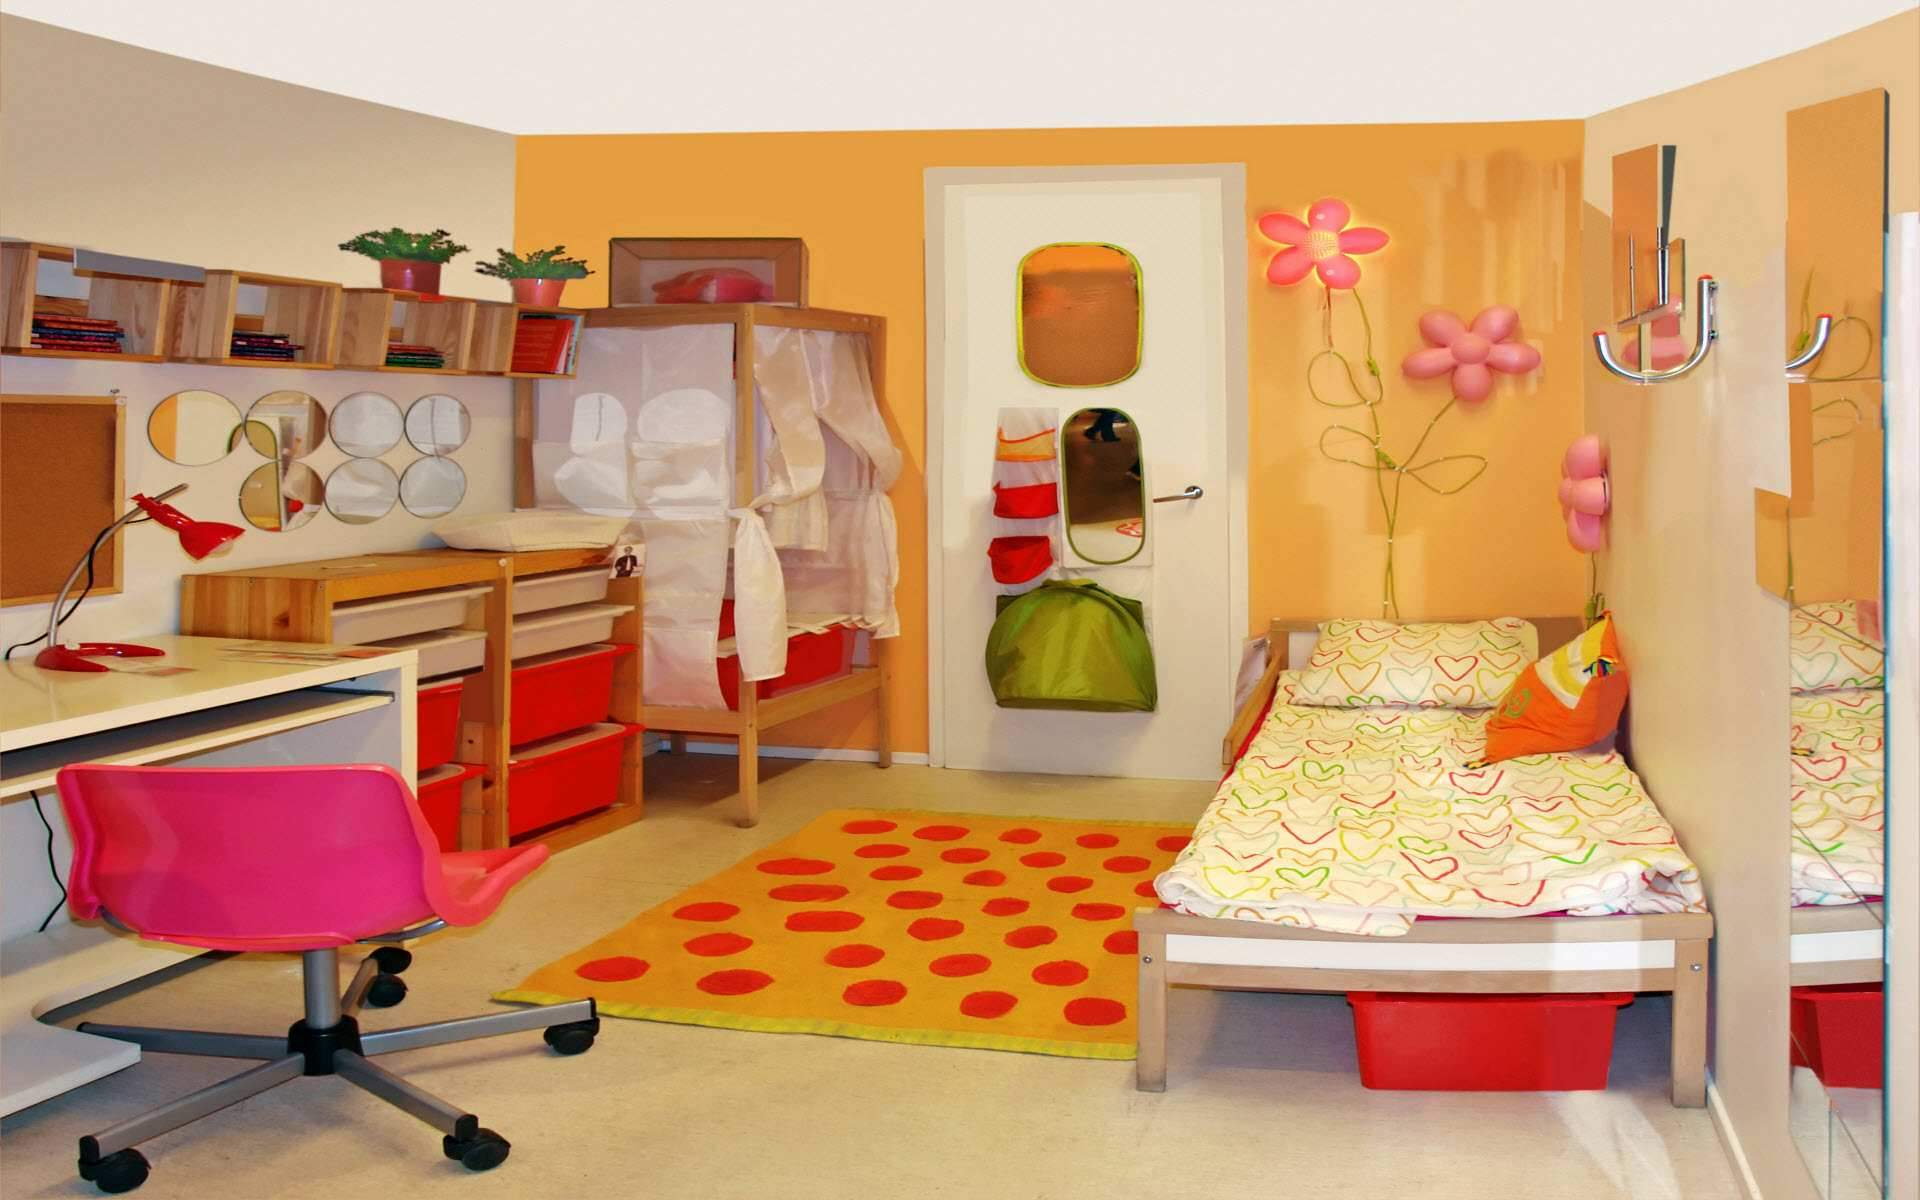 Unique small kids room decorating ideas image 012 small for Kids living room ideas